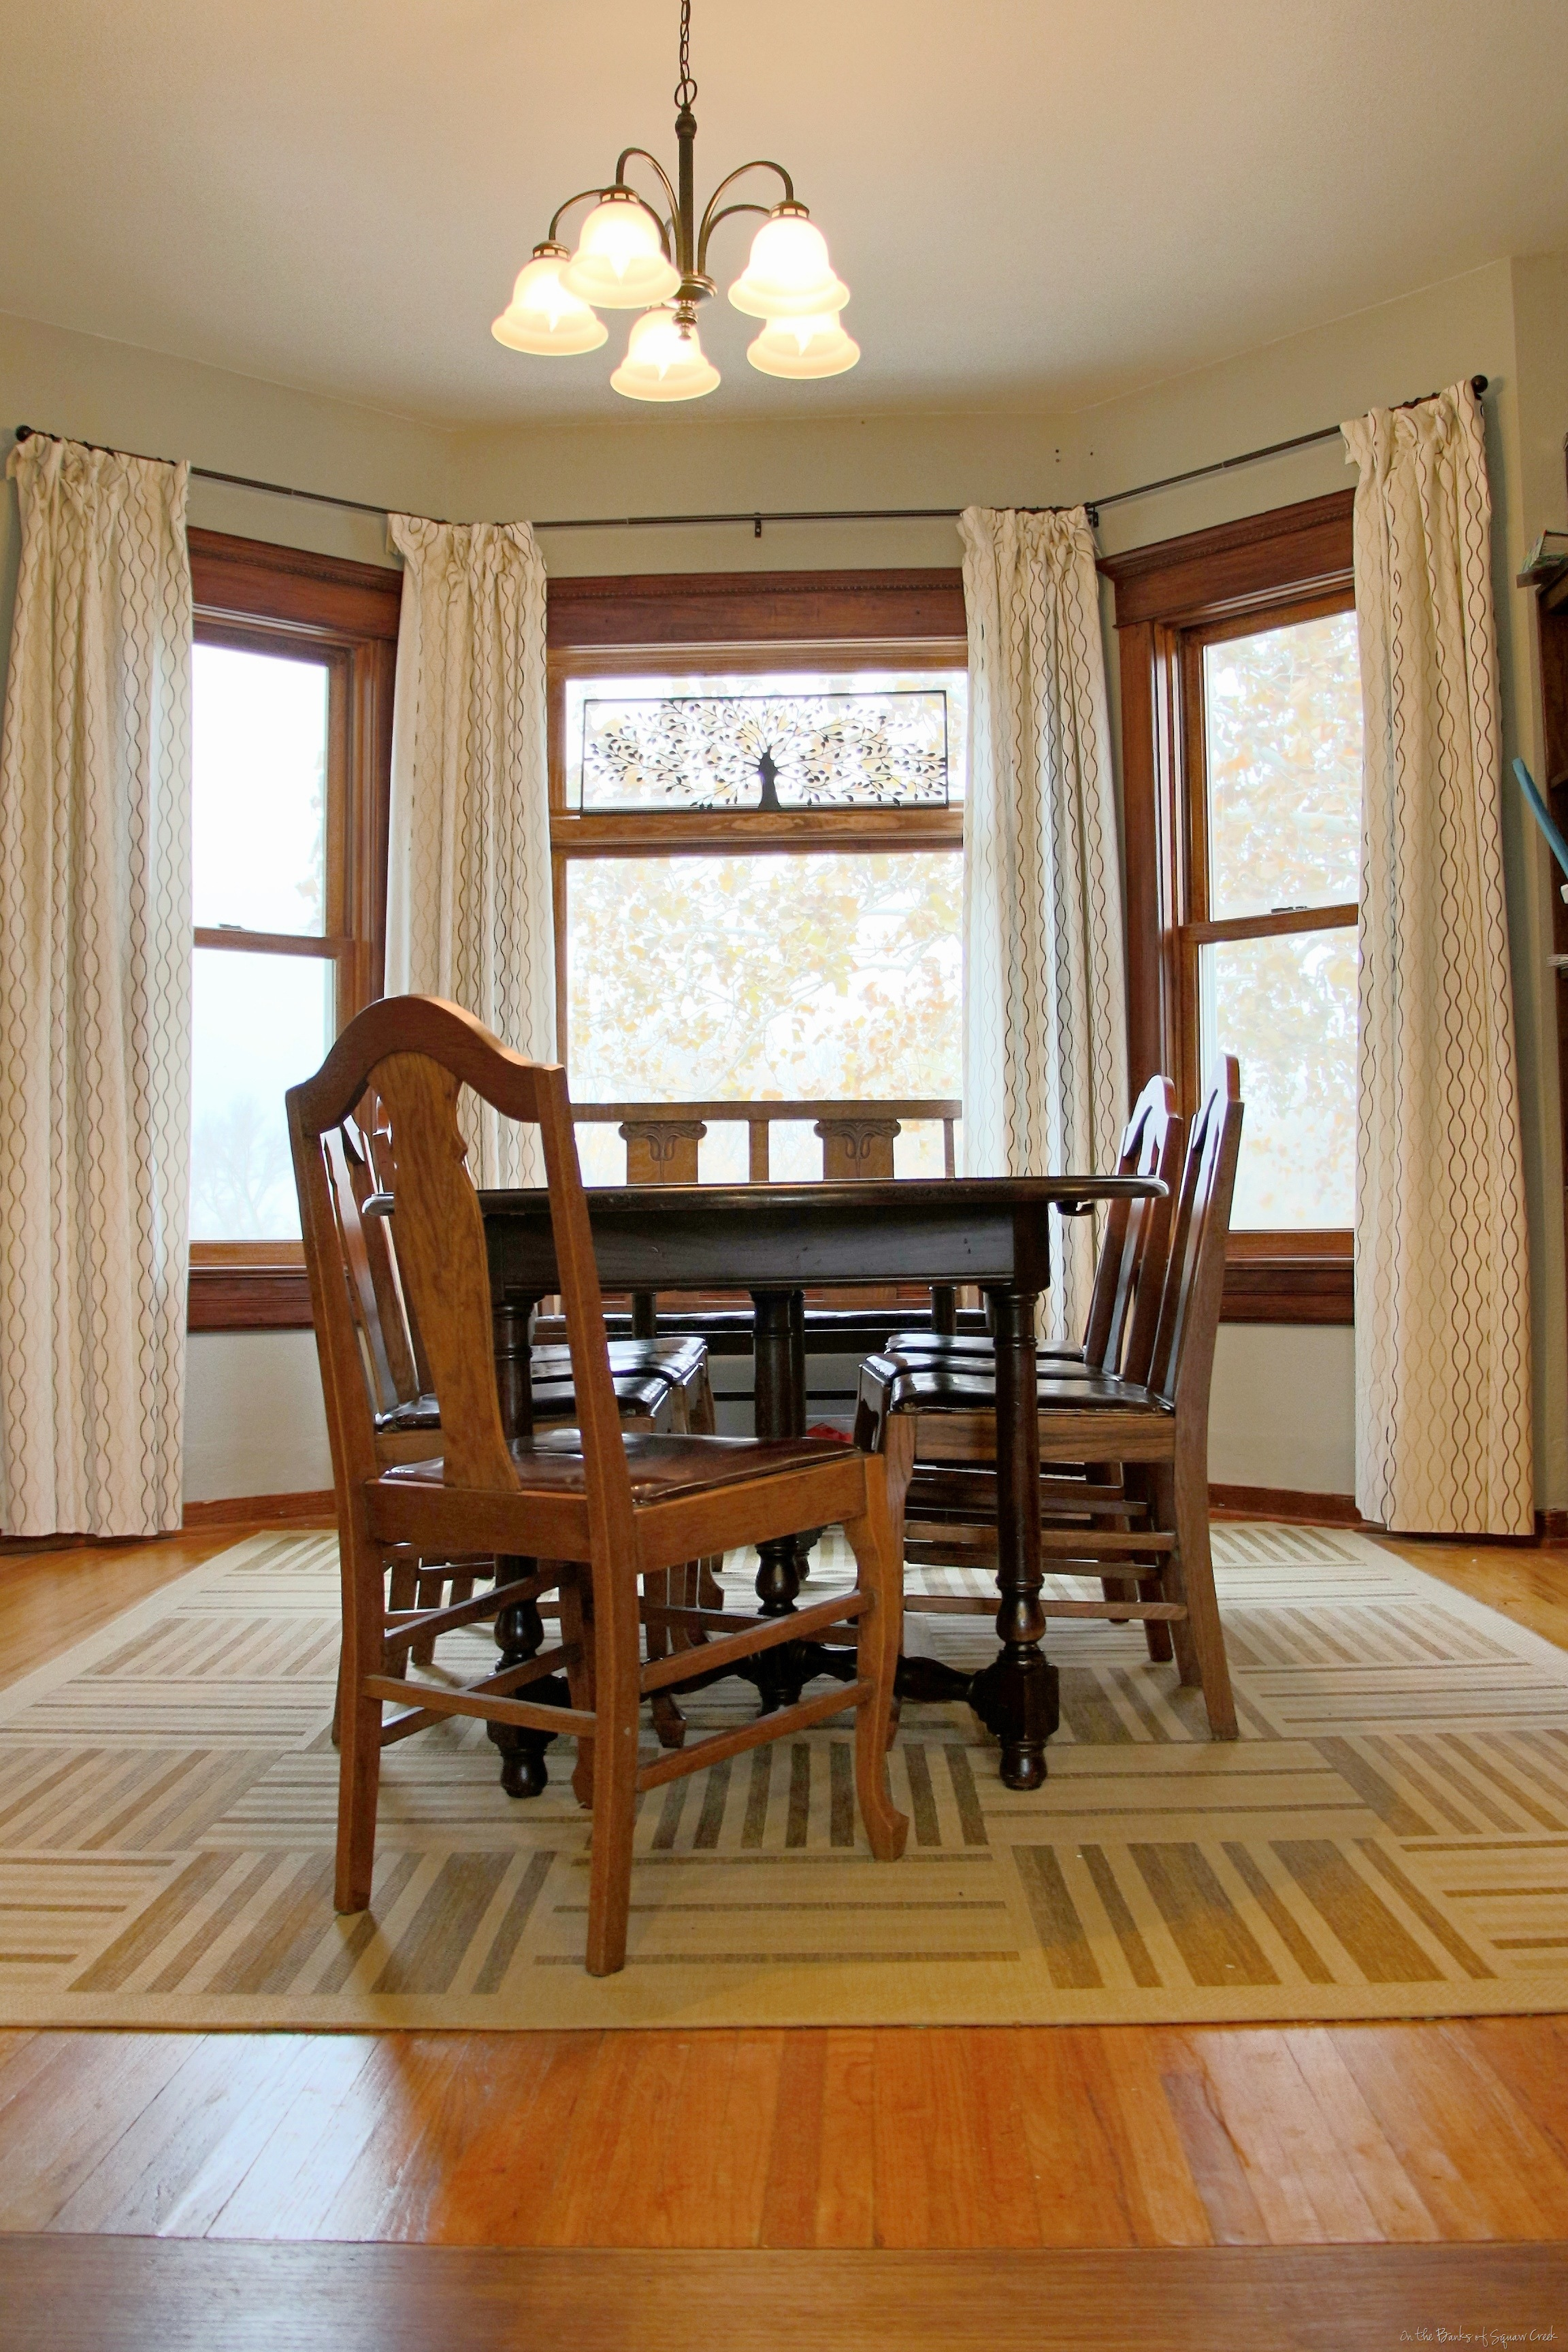 Guestpost} Thoughts on Dining Room Area Rugs - Reality Daydream